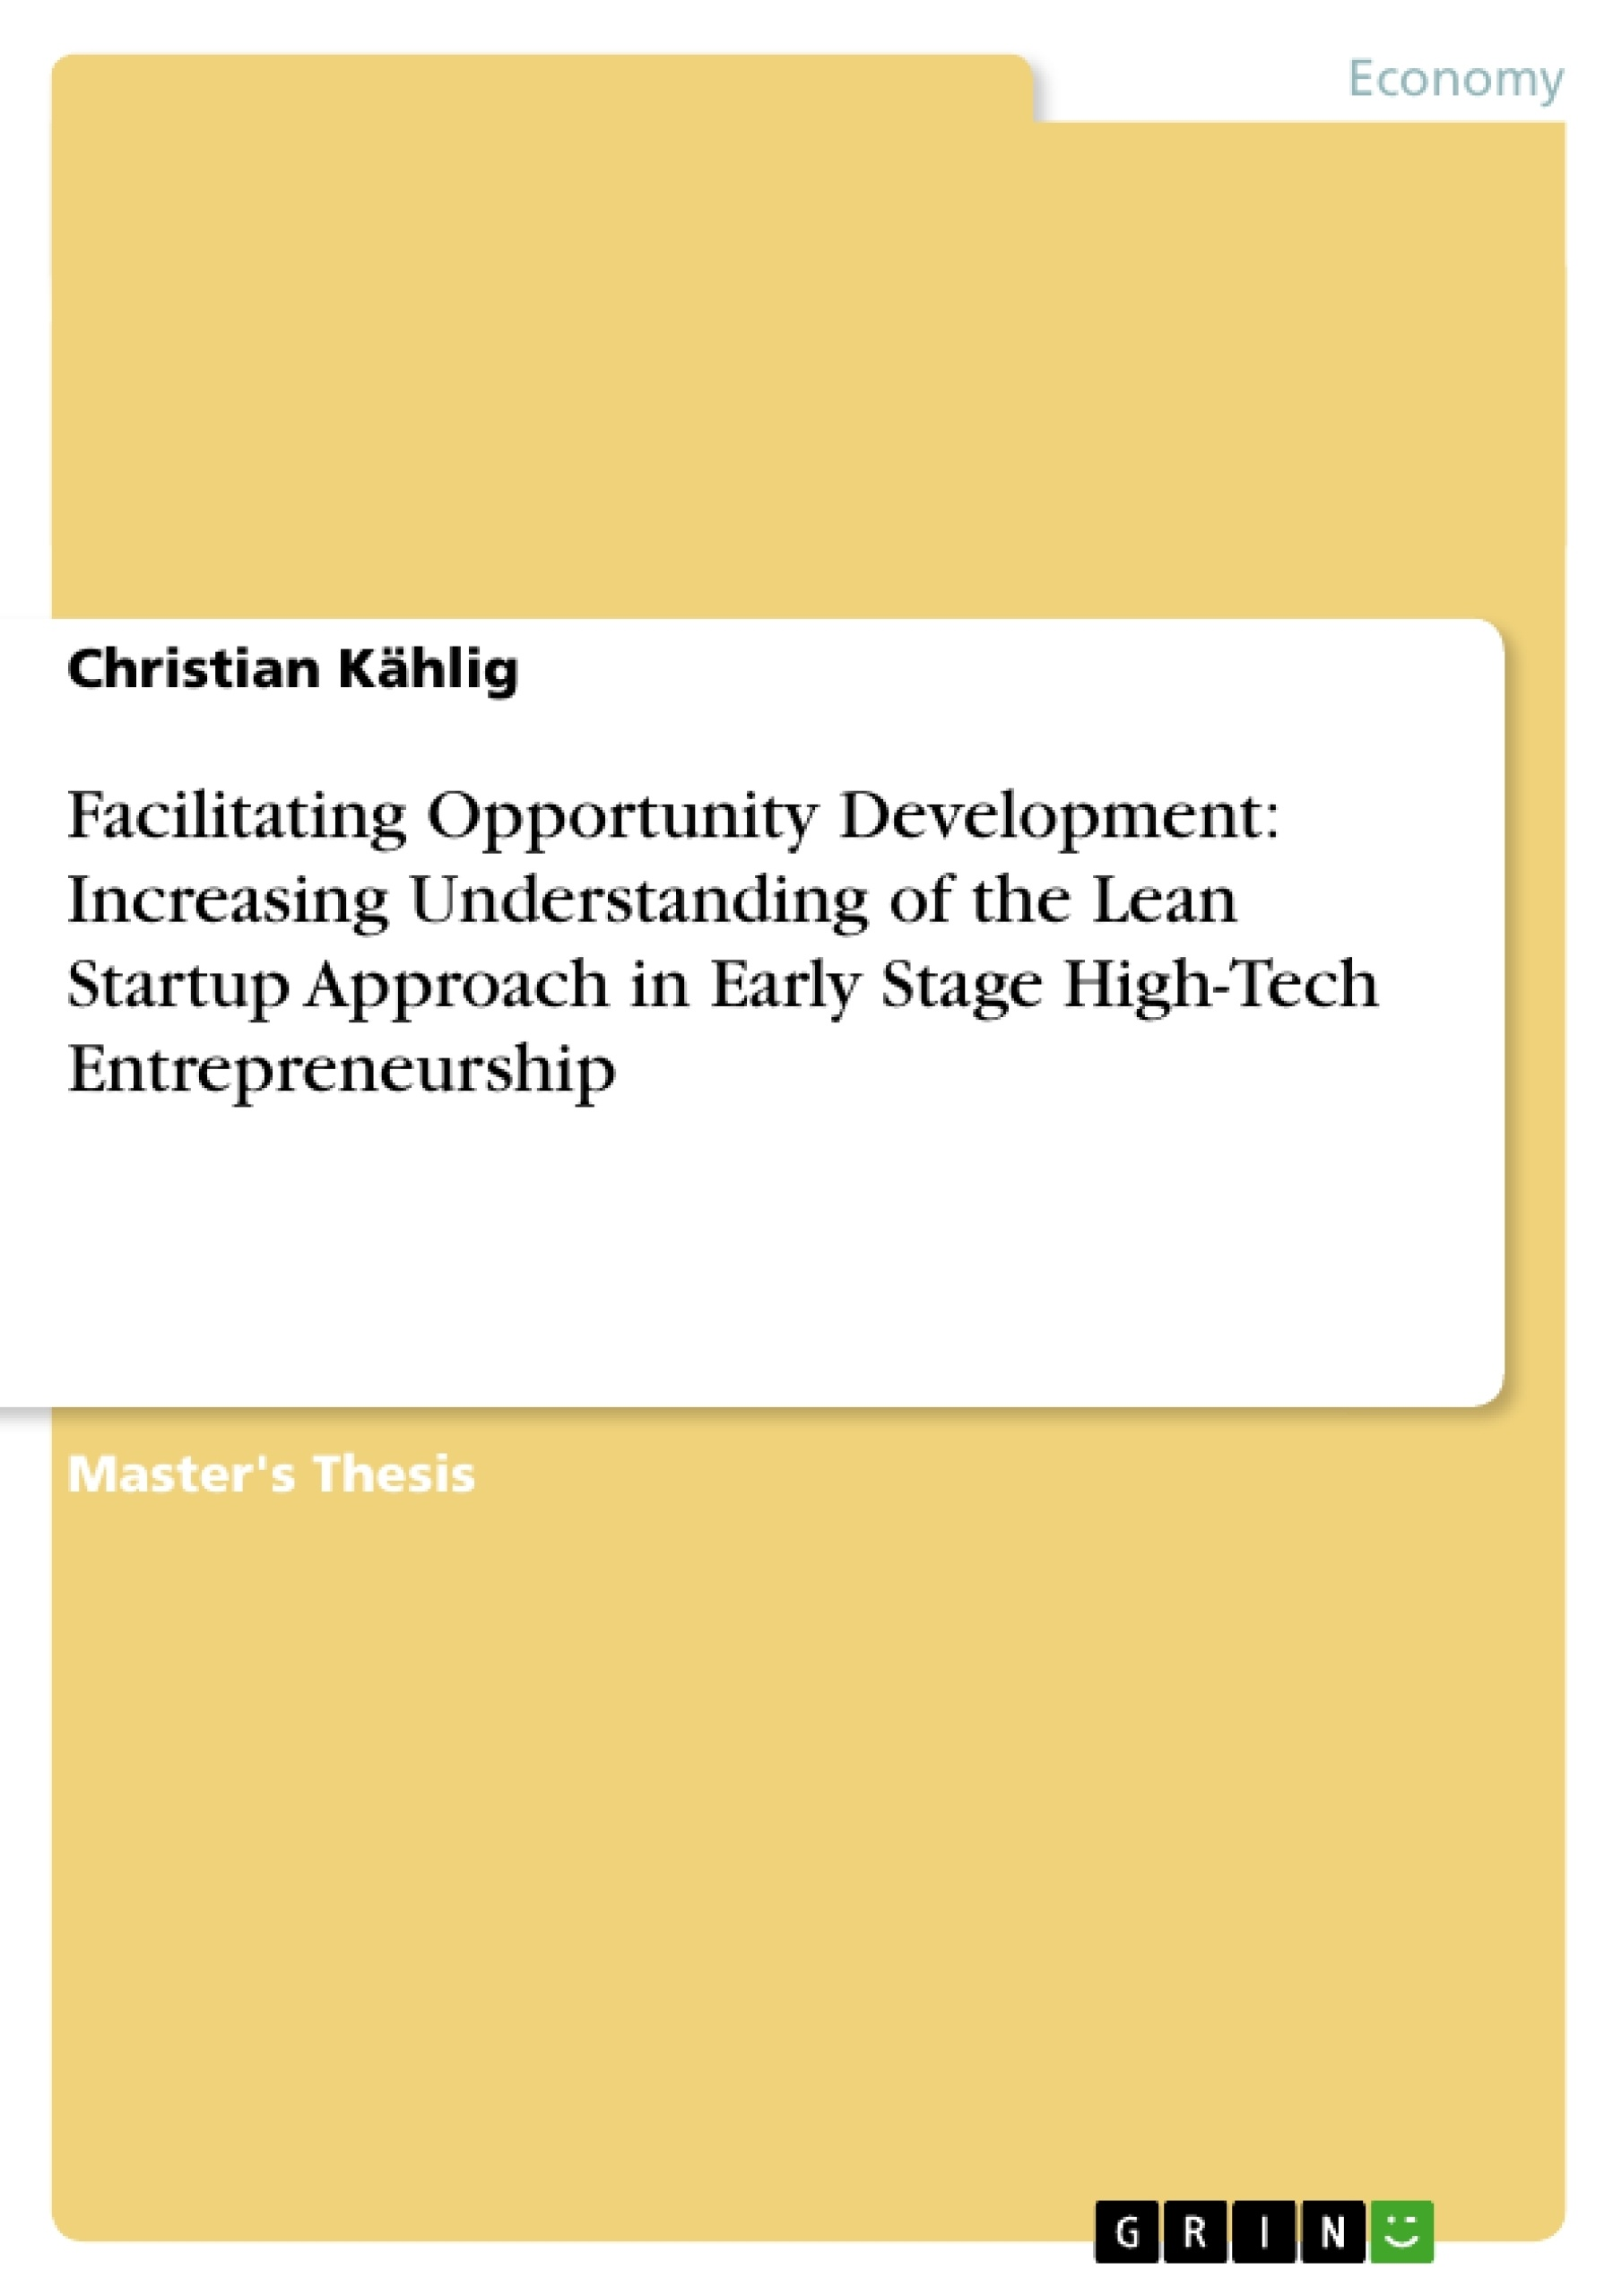 Title: Facilitating Opportunity Development: Increasing Understanding of the Lean Startup Approach in Early Stage High-Tech Entrepreneurship